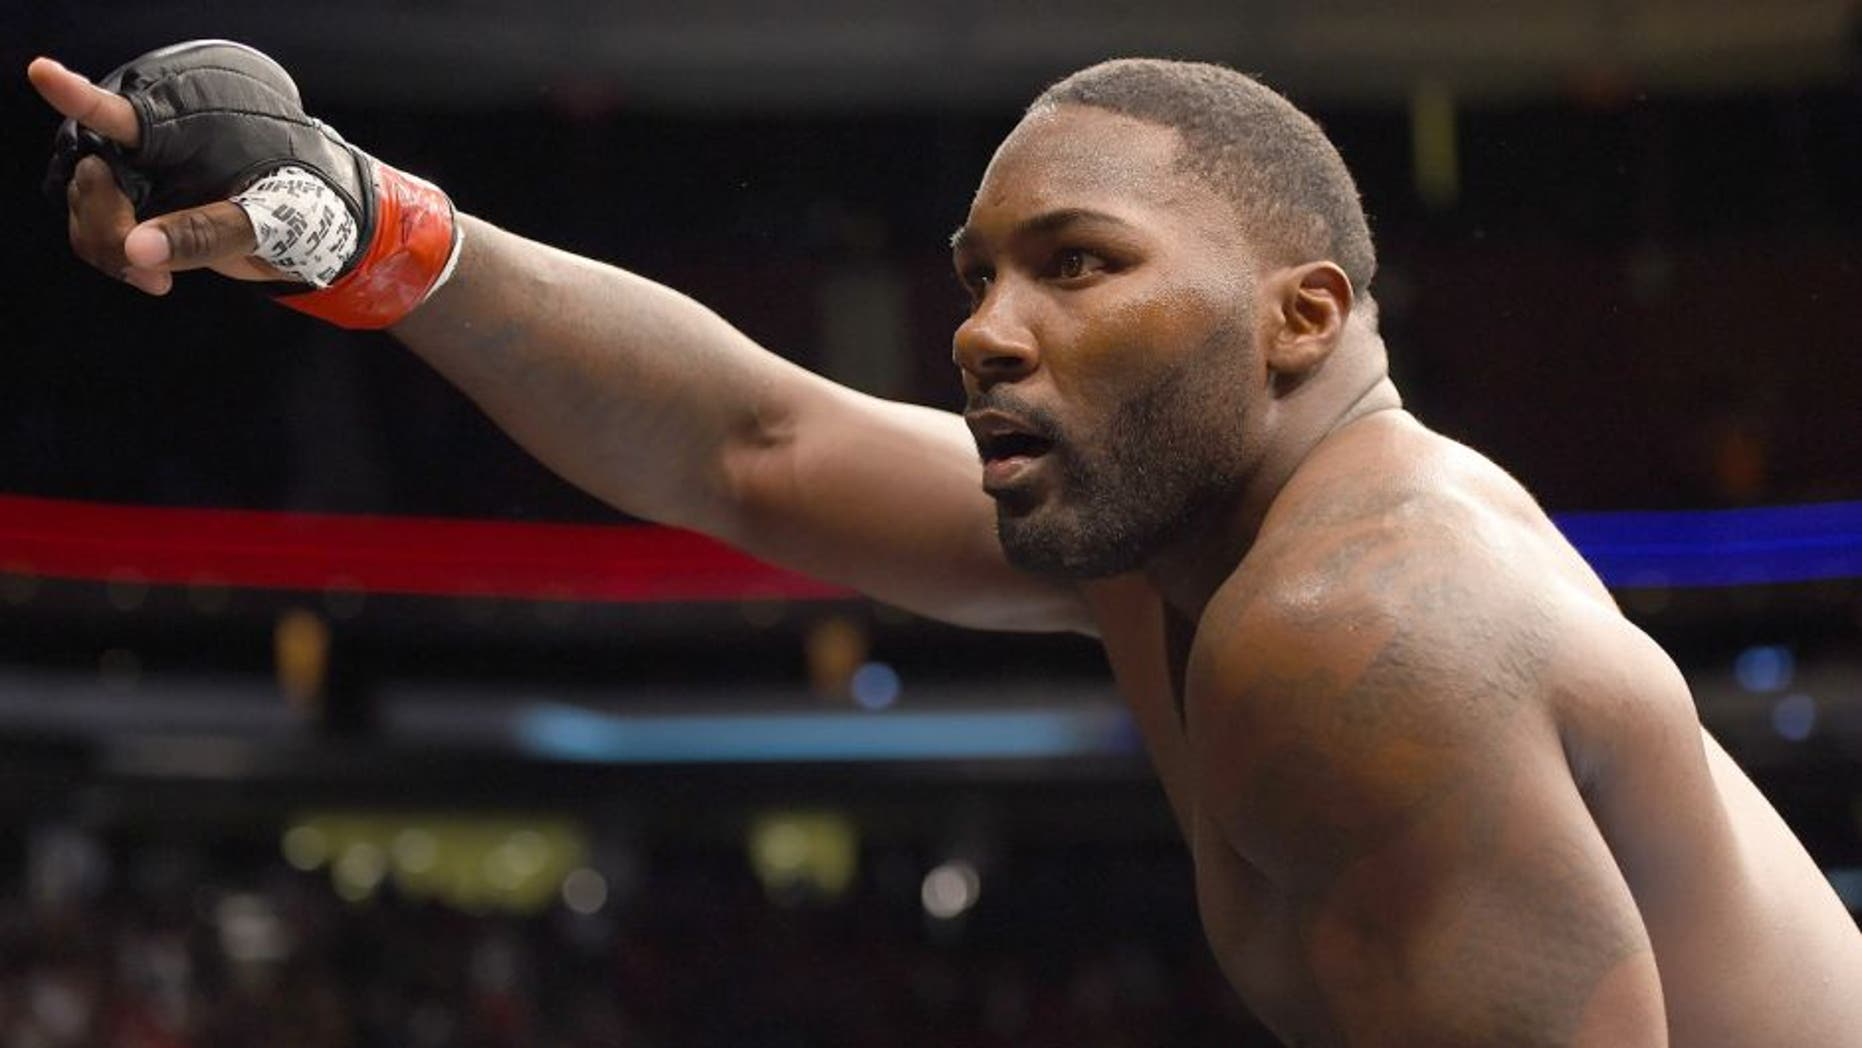 NEWARK, NJ - JANUARY 30: Anthony Johnson celebrates his knockout victory over Ryan Bader in their light heavyweight bout during the UFC Fight Night event at the Prudential Center on January 30, 2016 in Newark, New Jersey. (Photo by Josh Hedges/Zuffa LLC/Zuffa LLC via Getty Images)